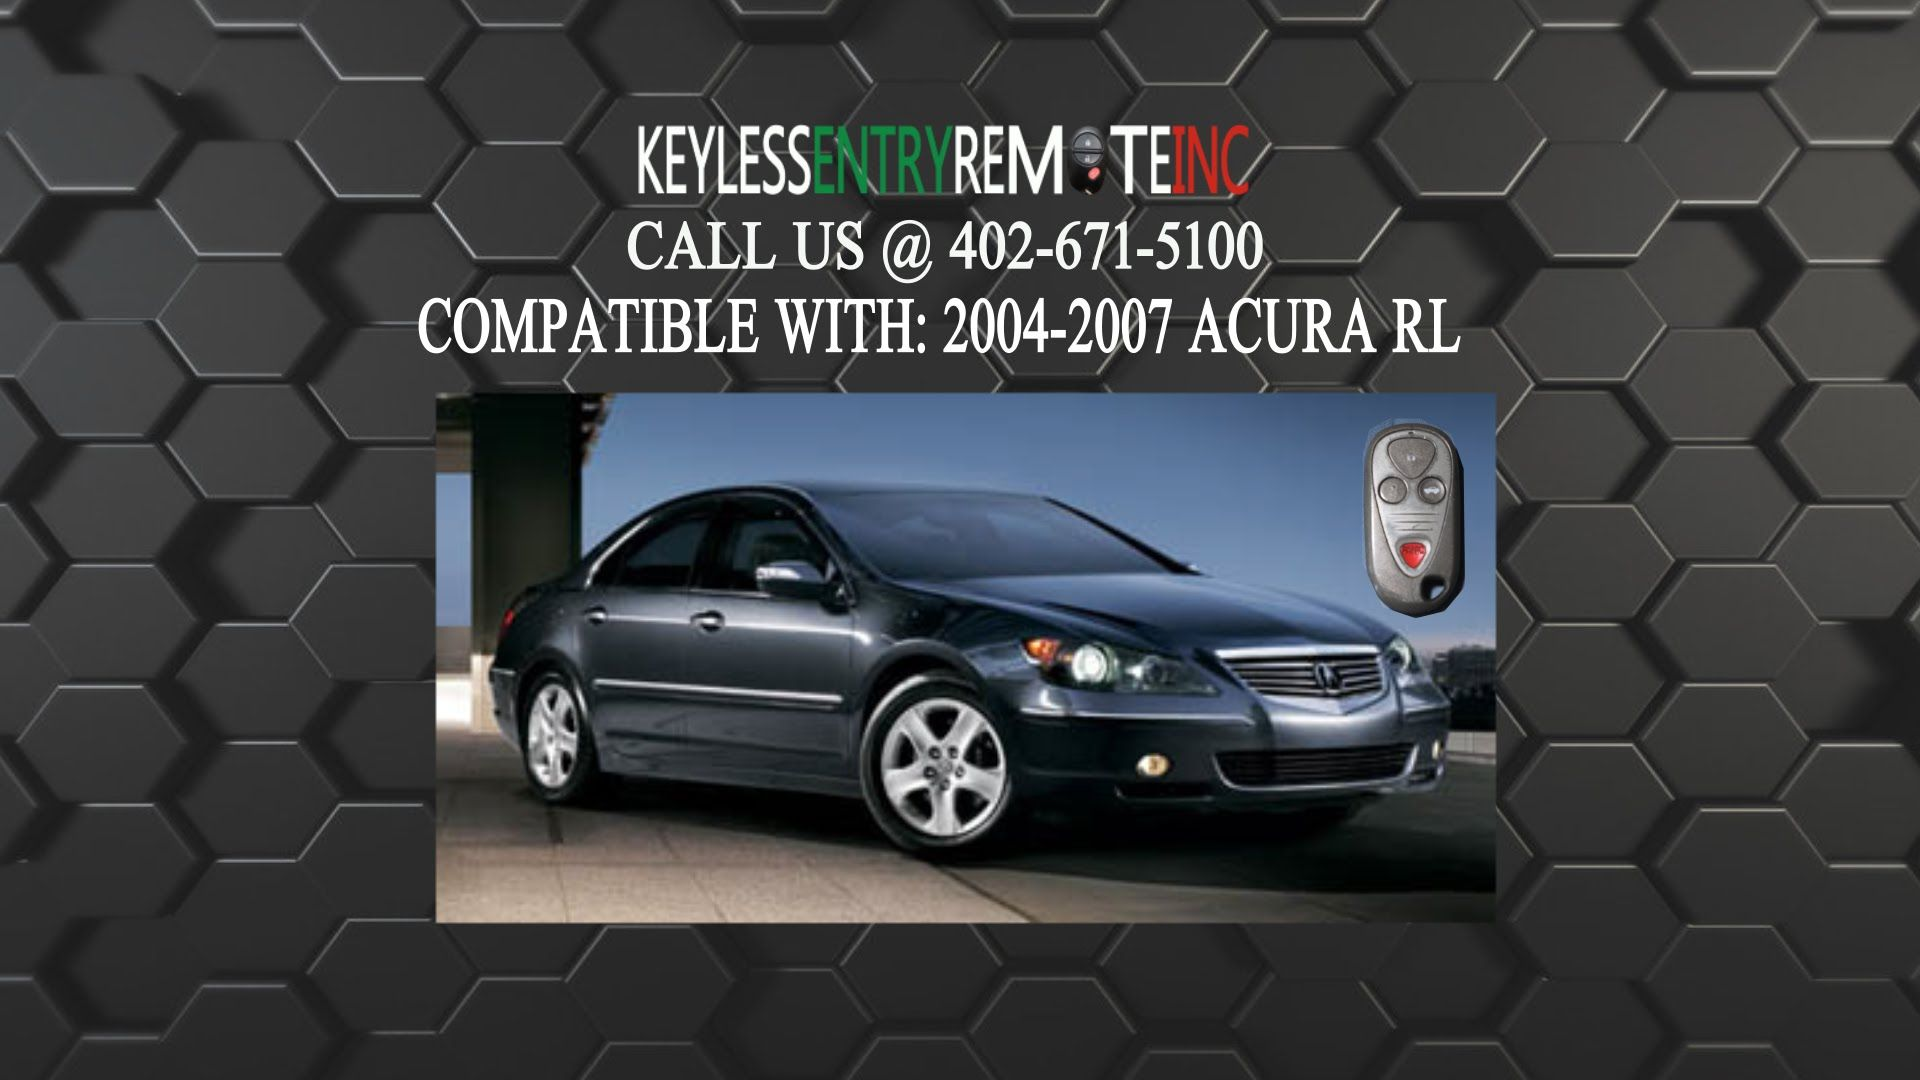 How to replace an acura rl key fob battery 2002 2004